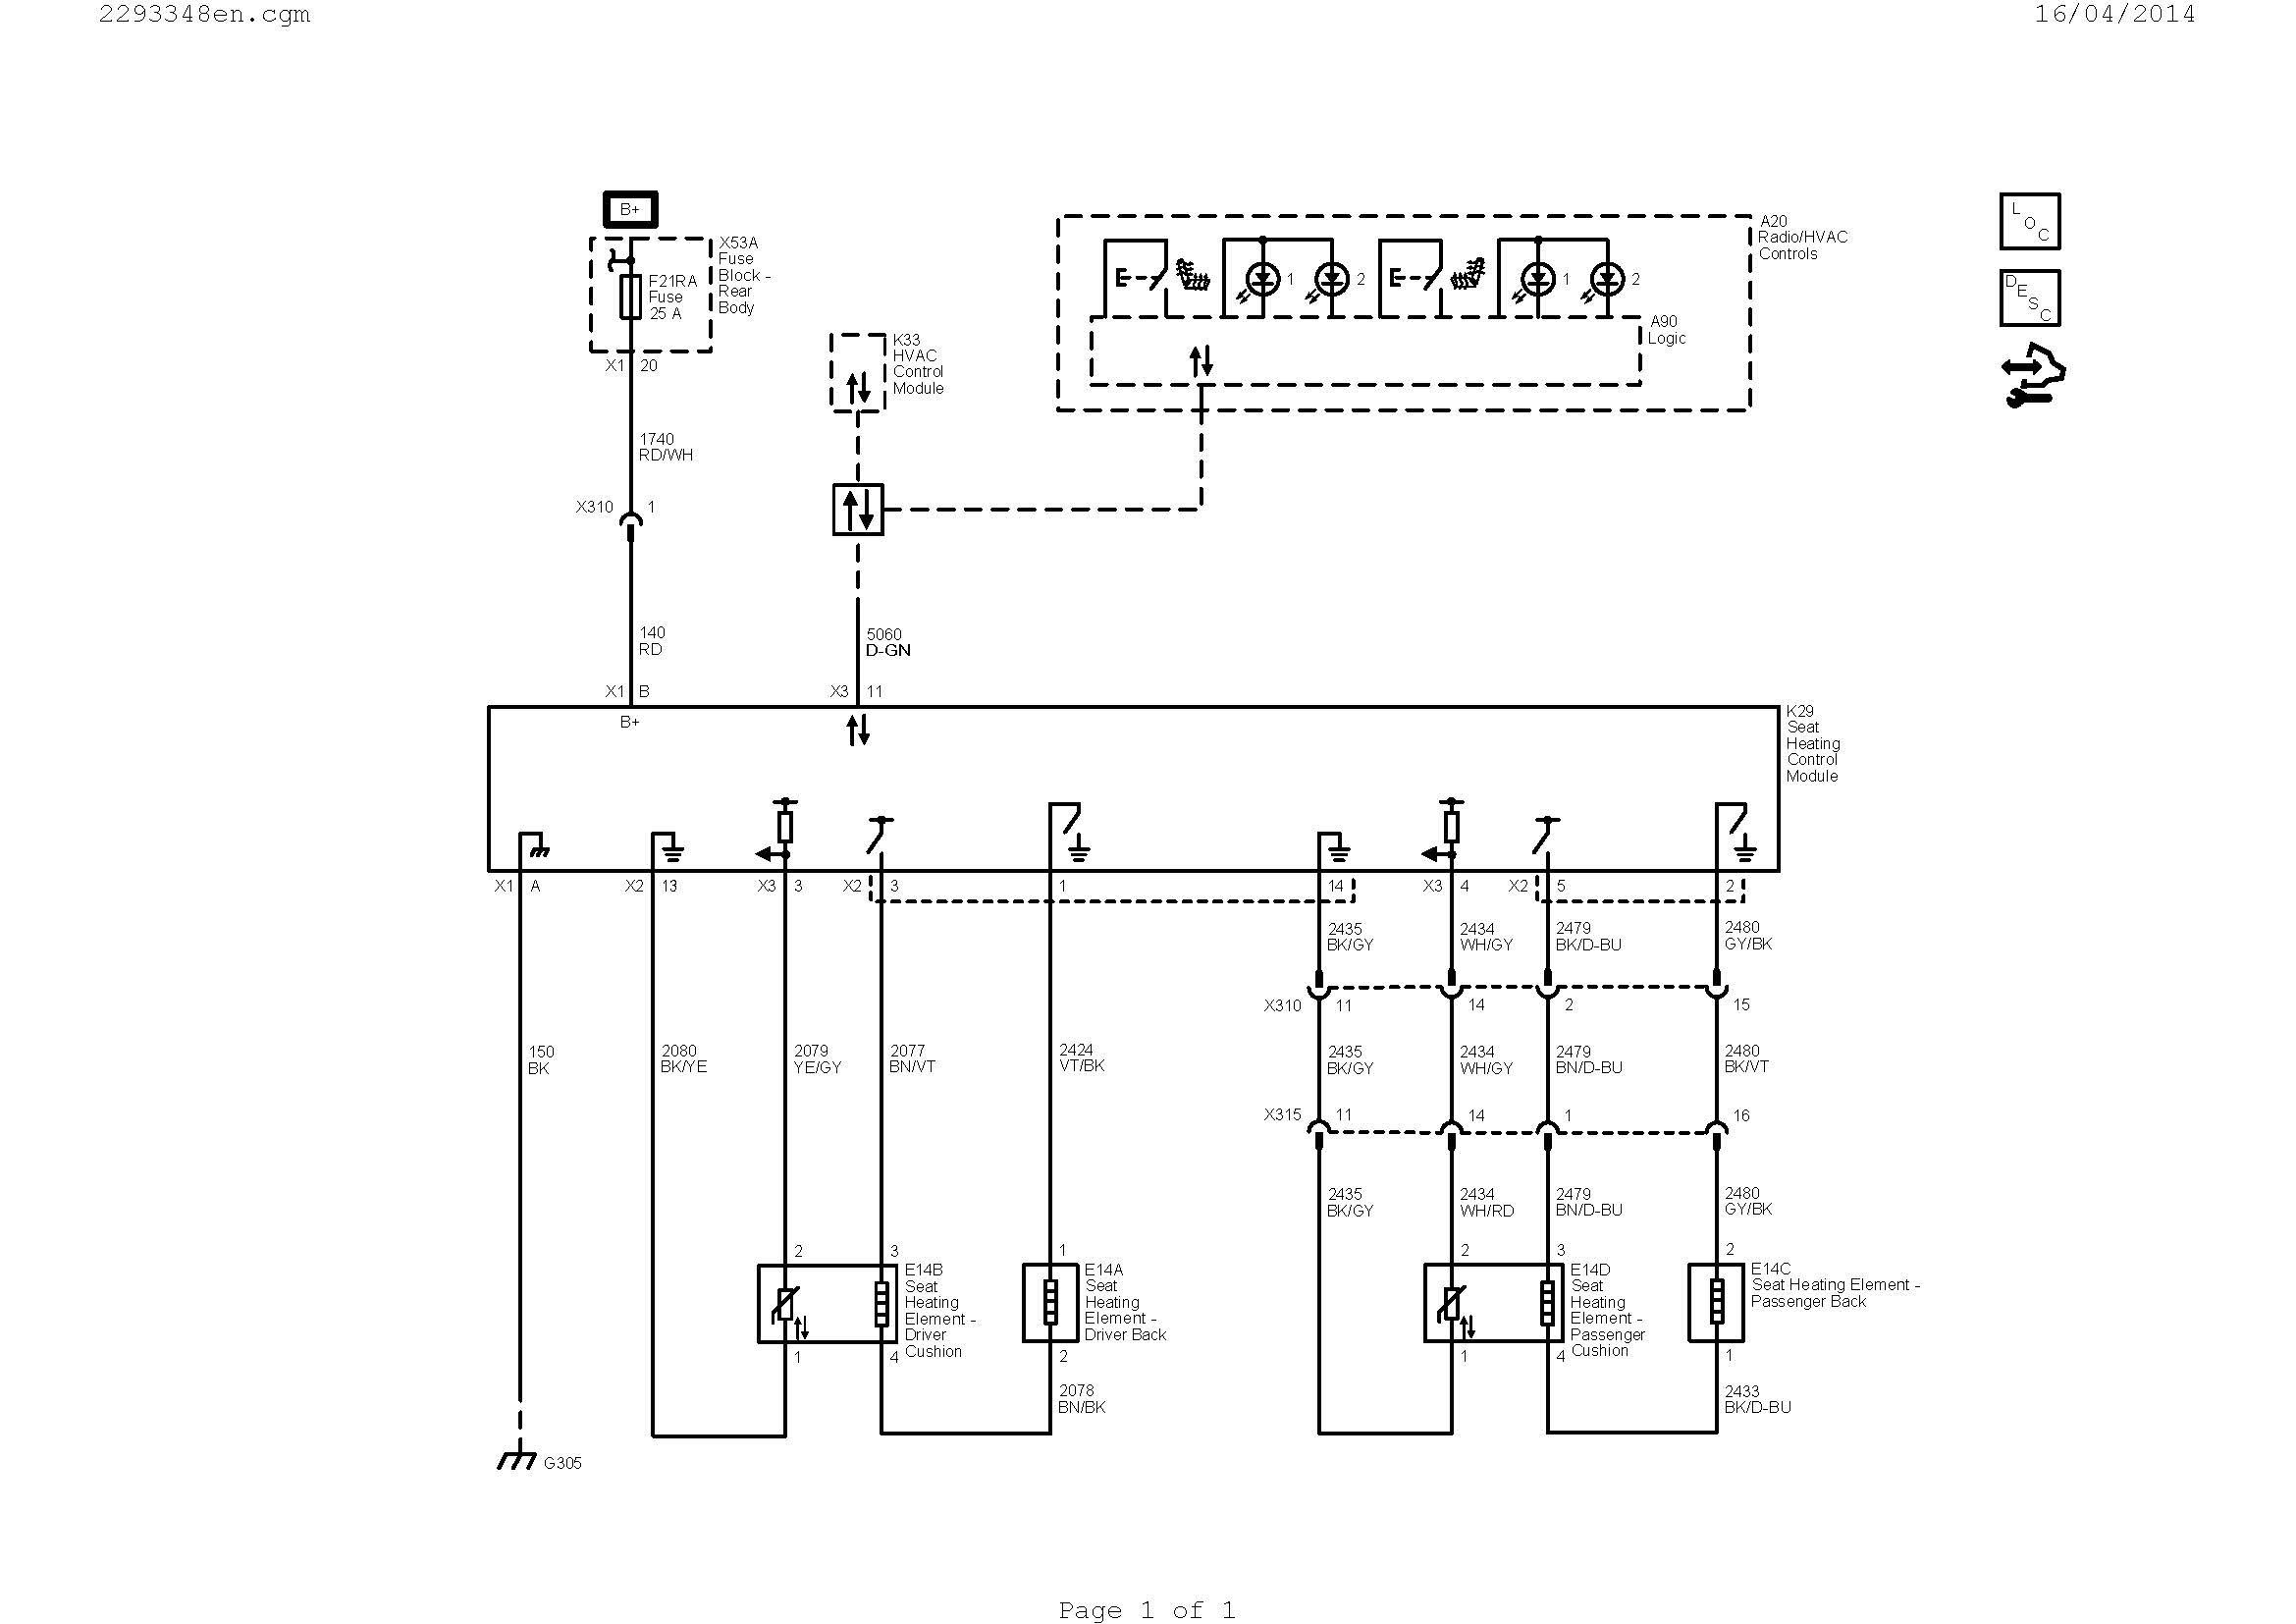 heating and cooling thermostat wiring diagram Collection-Nest Wireless thermostat Wiring Diagram Refrence Wiring Diagram Ac Valid Hvac Diagram Best Hvac Diagram 0d 3-d